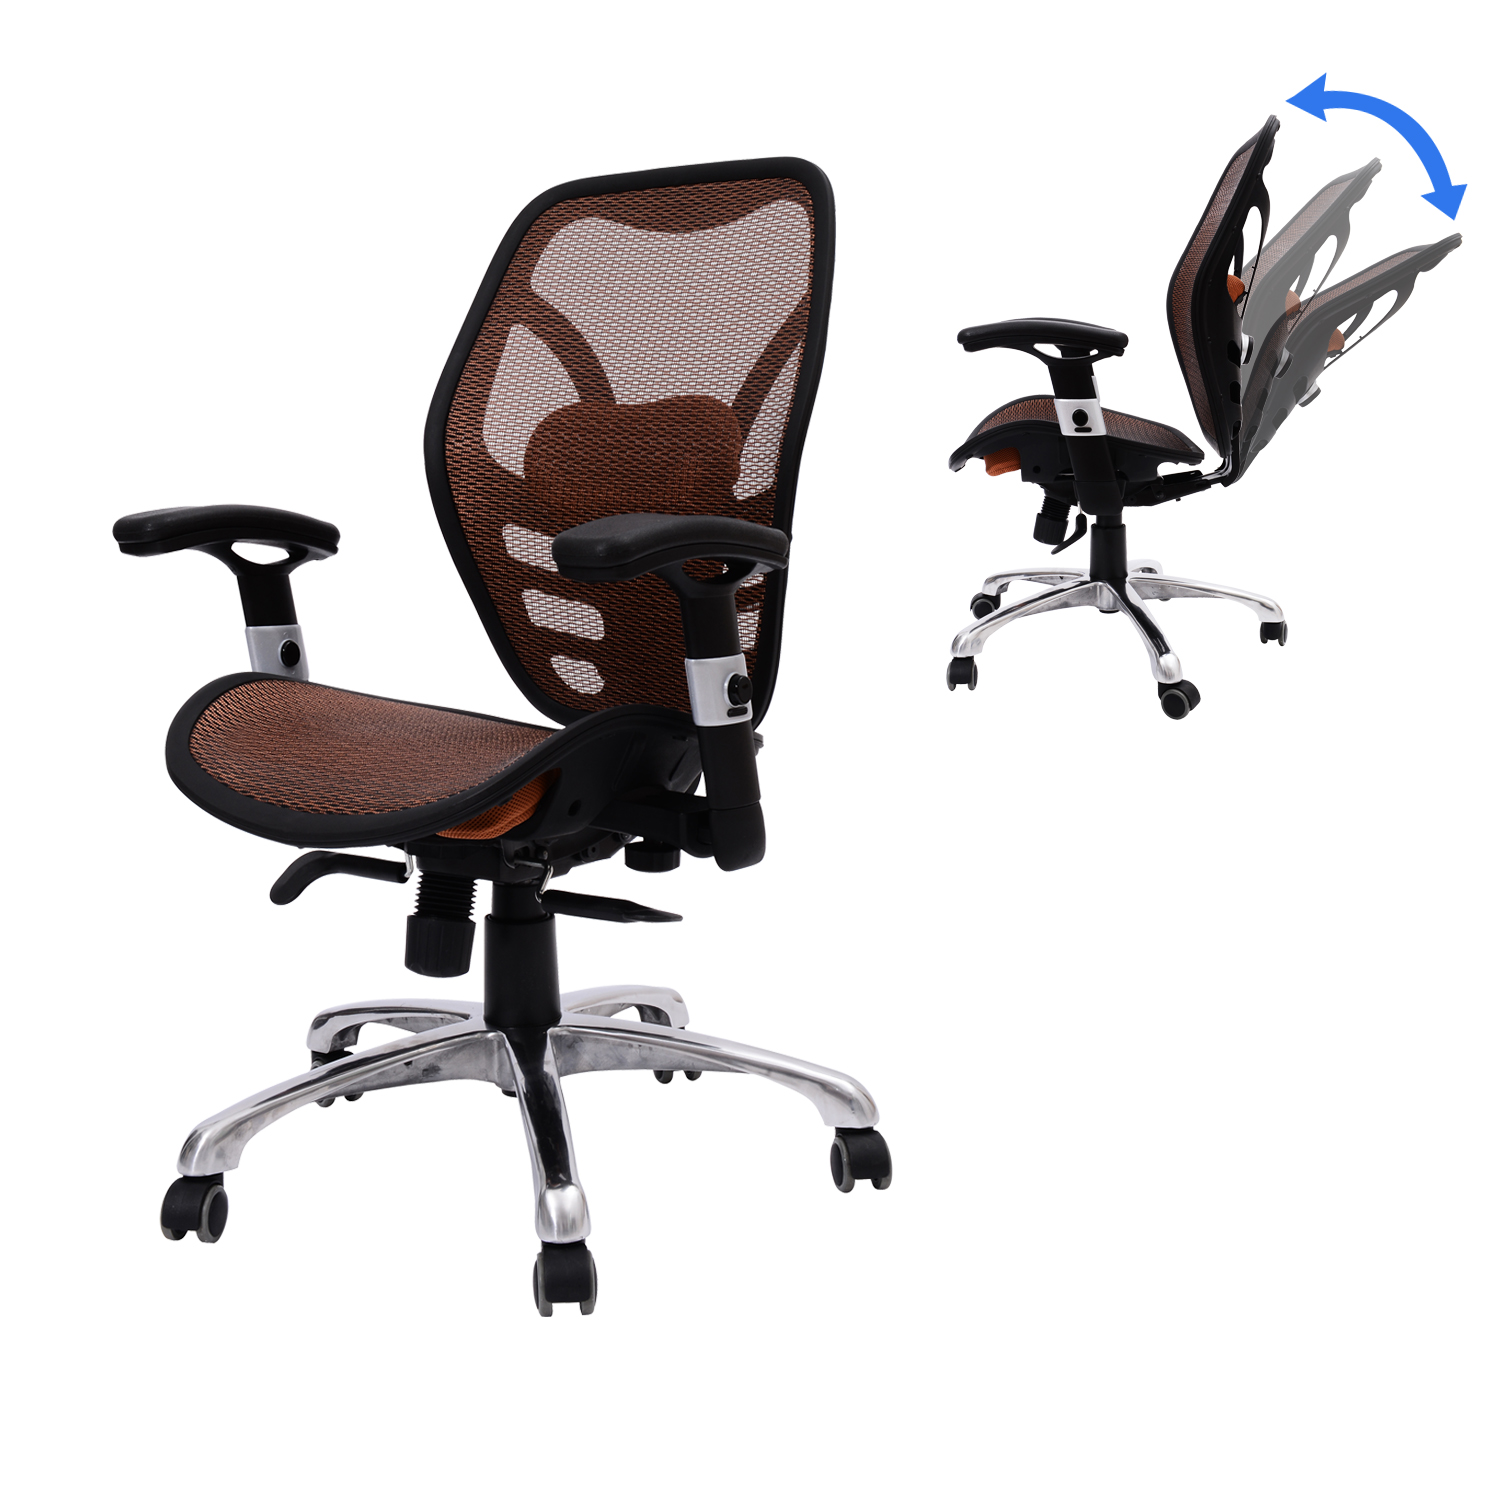 Office Max Computer Chairs 100 Ergonomic Computer Desk Chairs Best Ergonomic Computer Chair